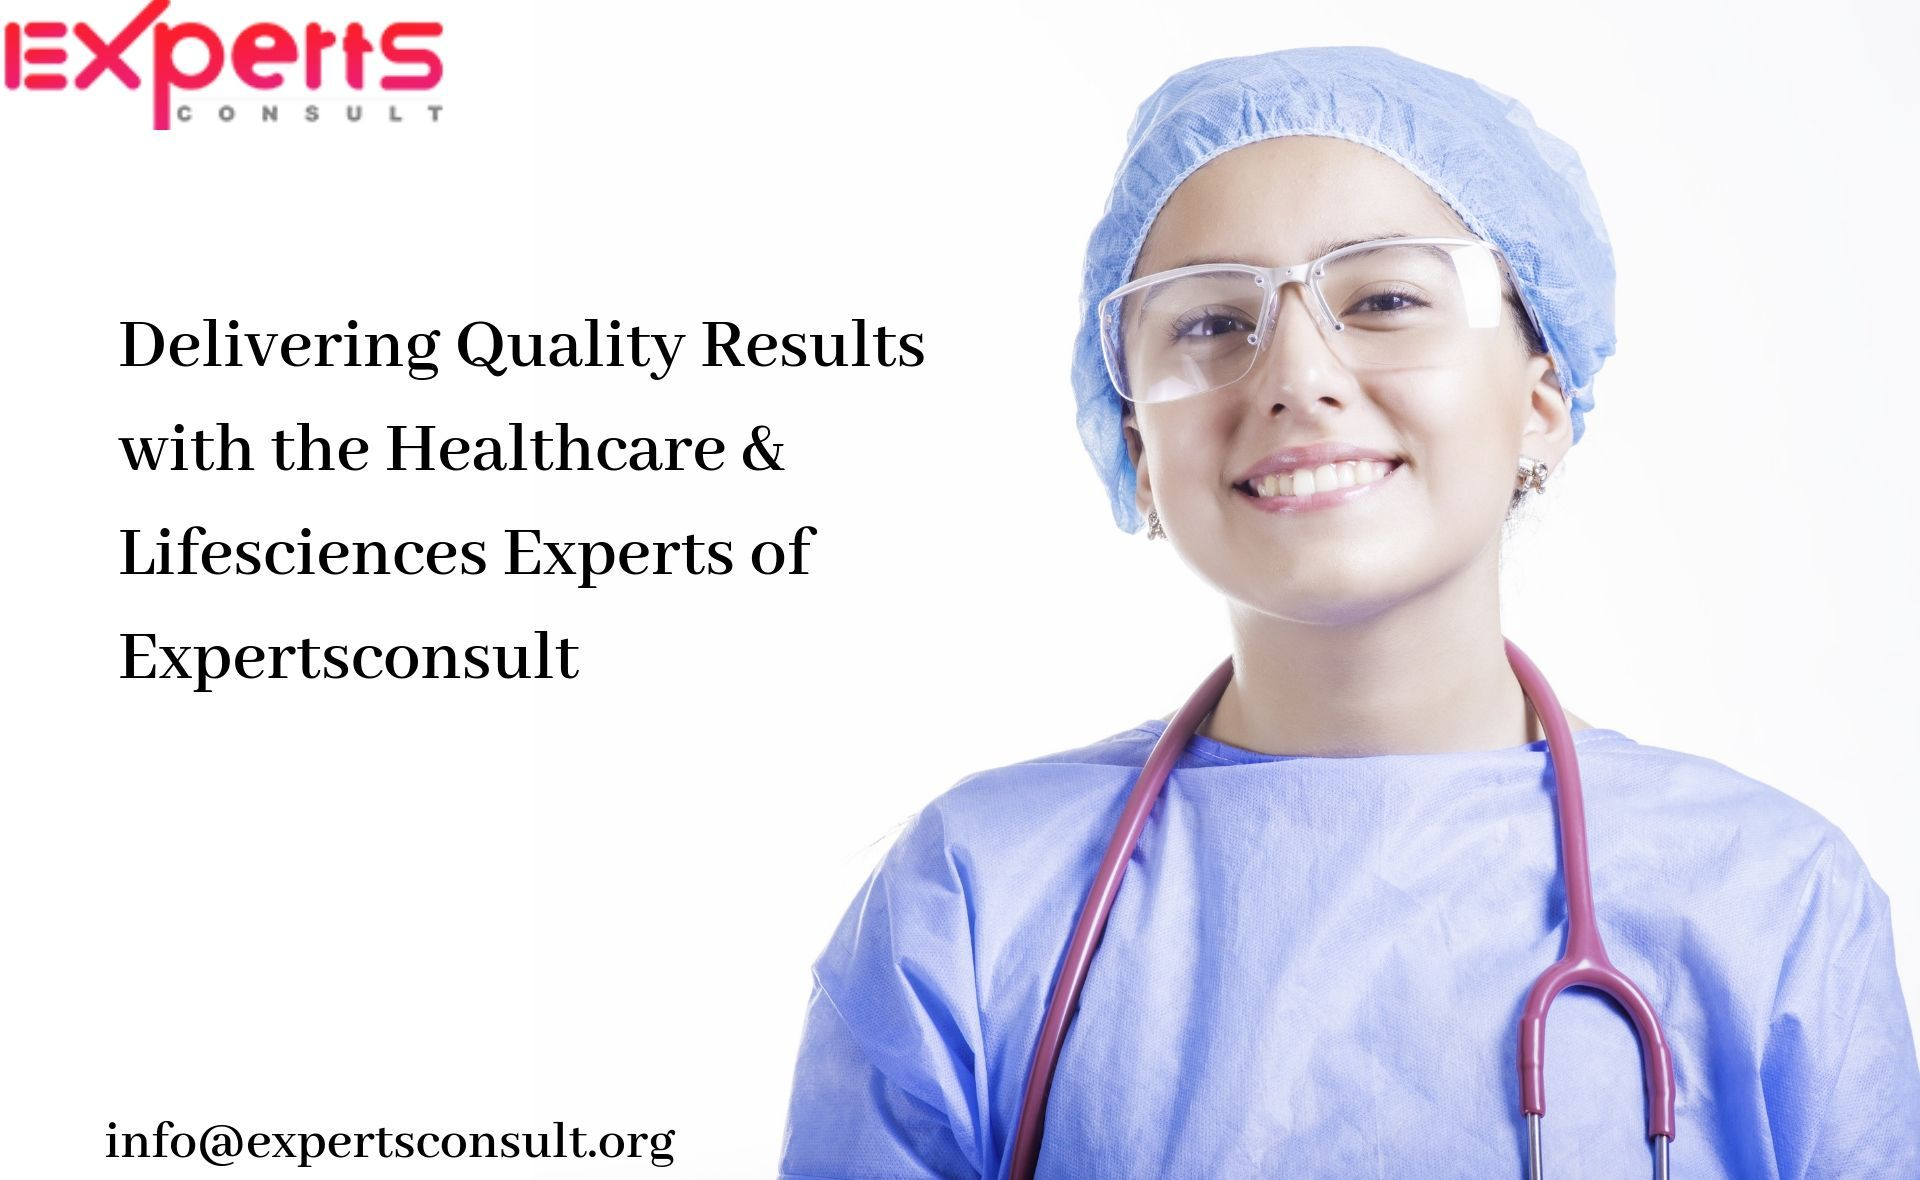 Expertsconsult is a leading company expert network firm